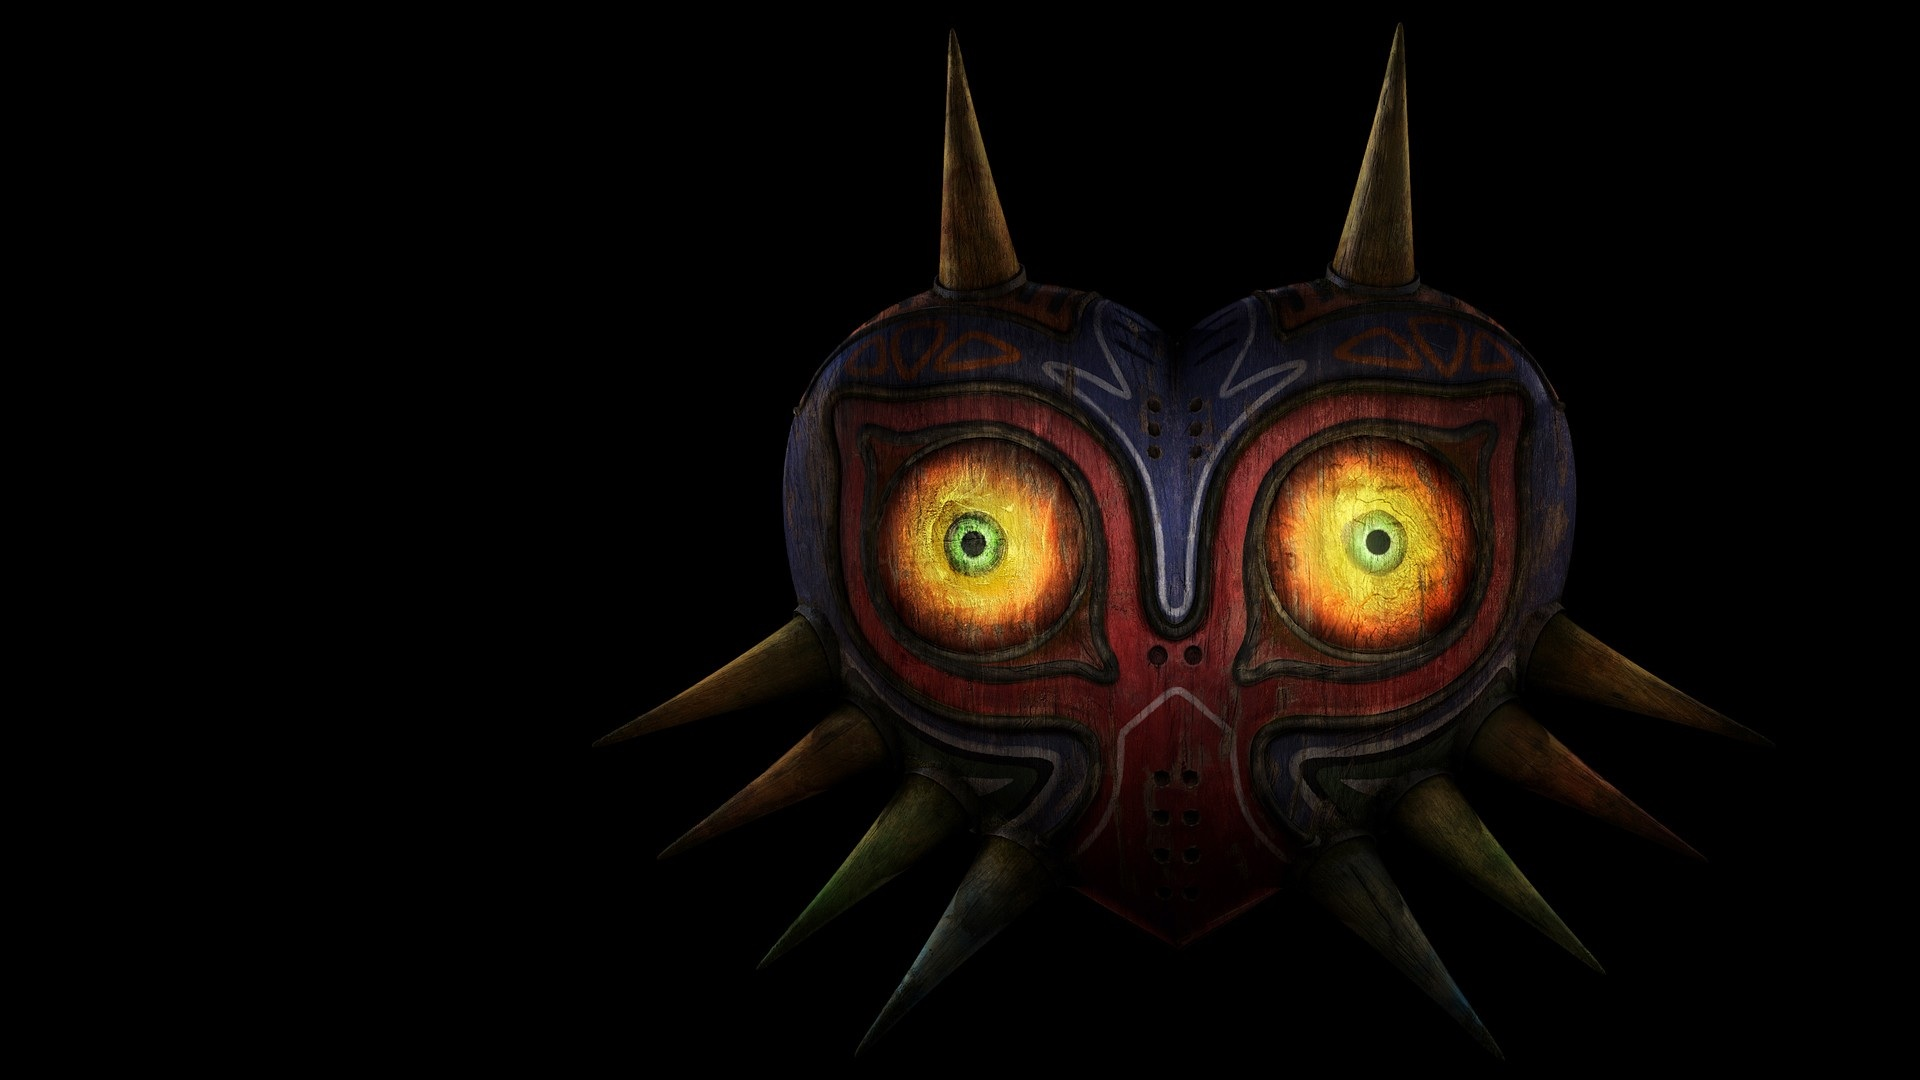 1920x1080 The Legend of Zelda Mask desktop PC and Mac wallpaper 1920x1080